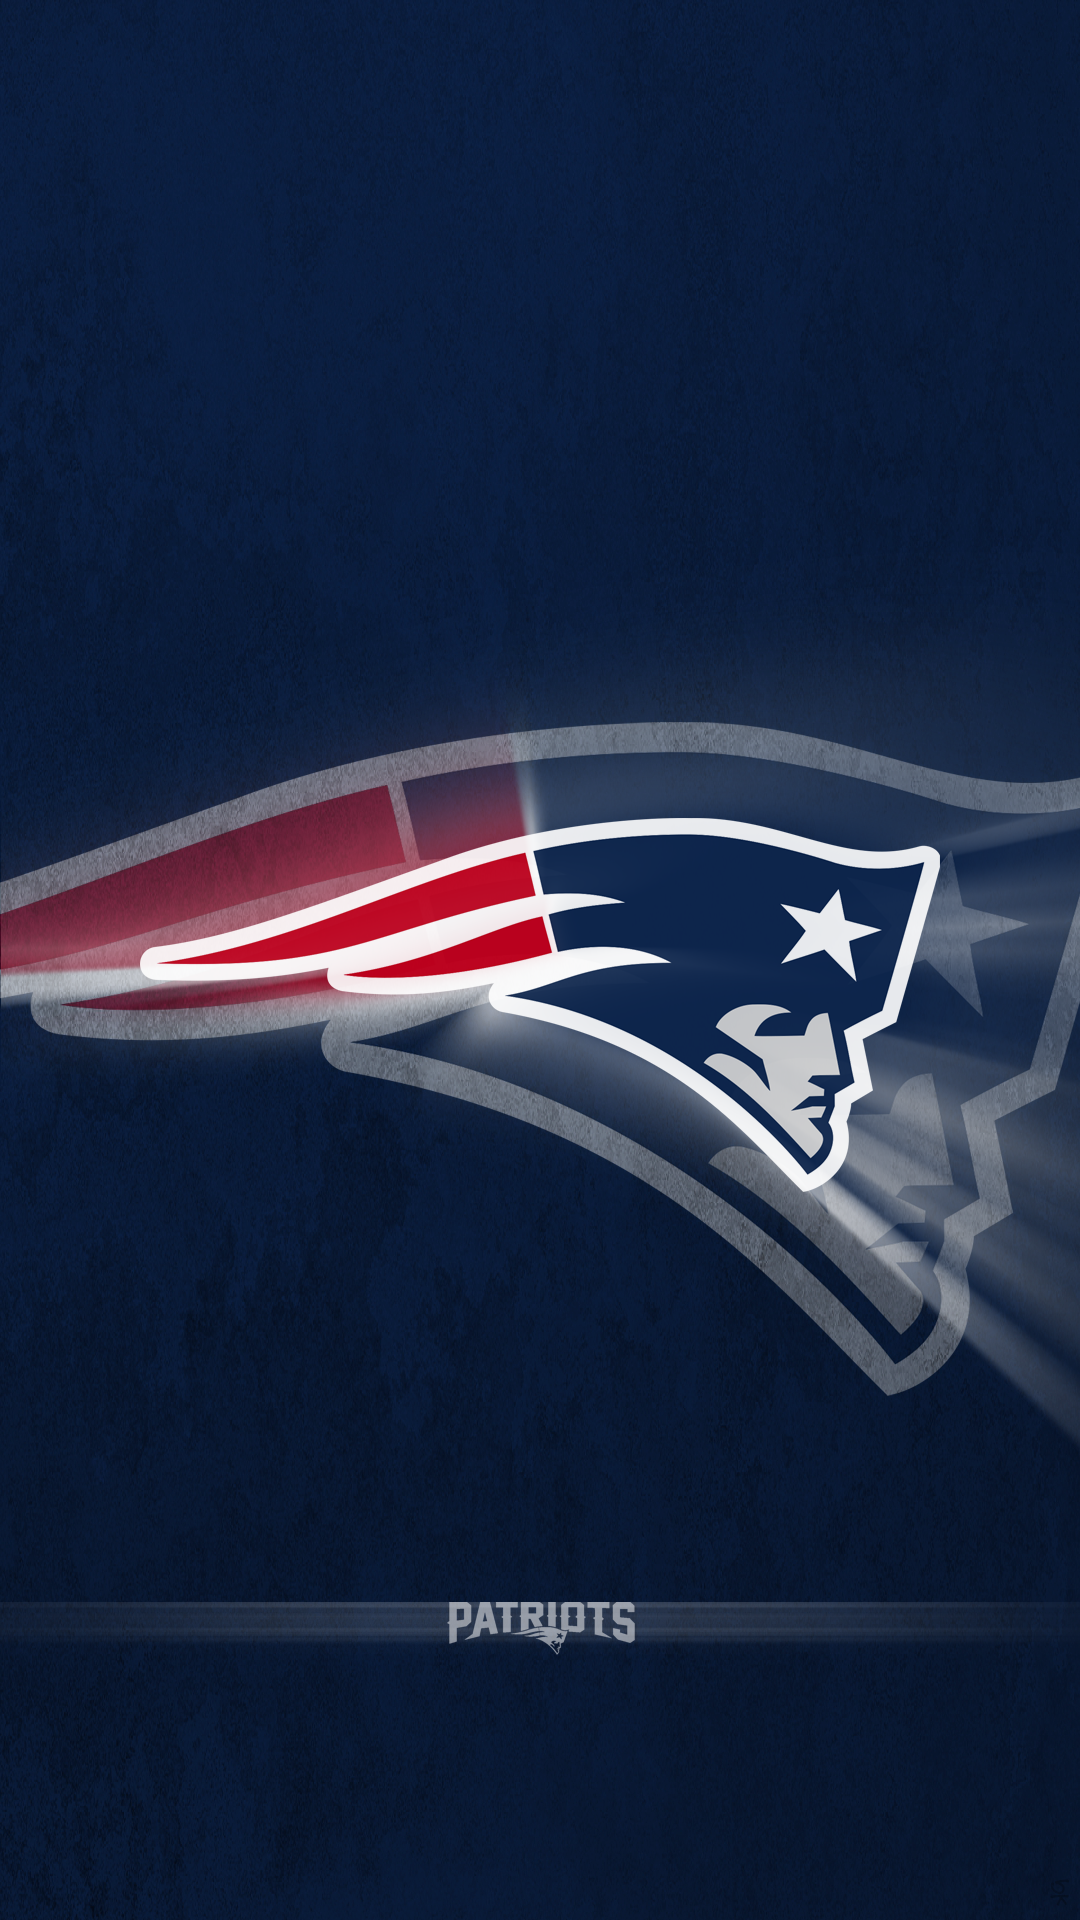 Wallpapers of the week Superbowl XLIX wallpapers for iPhone and iPad 1080x1920